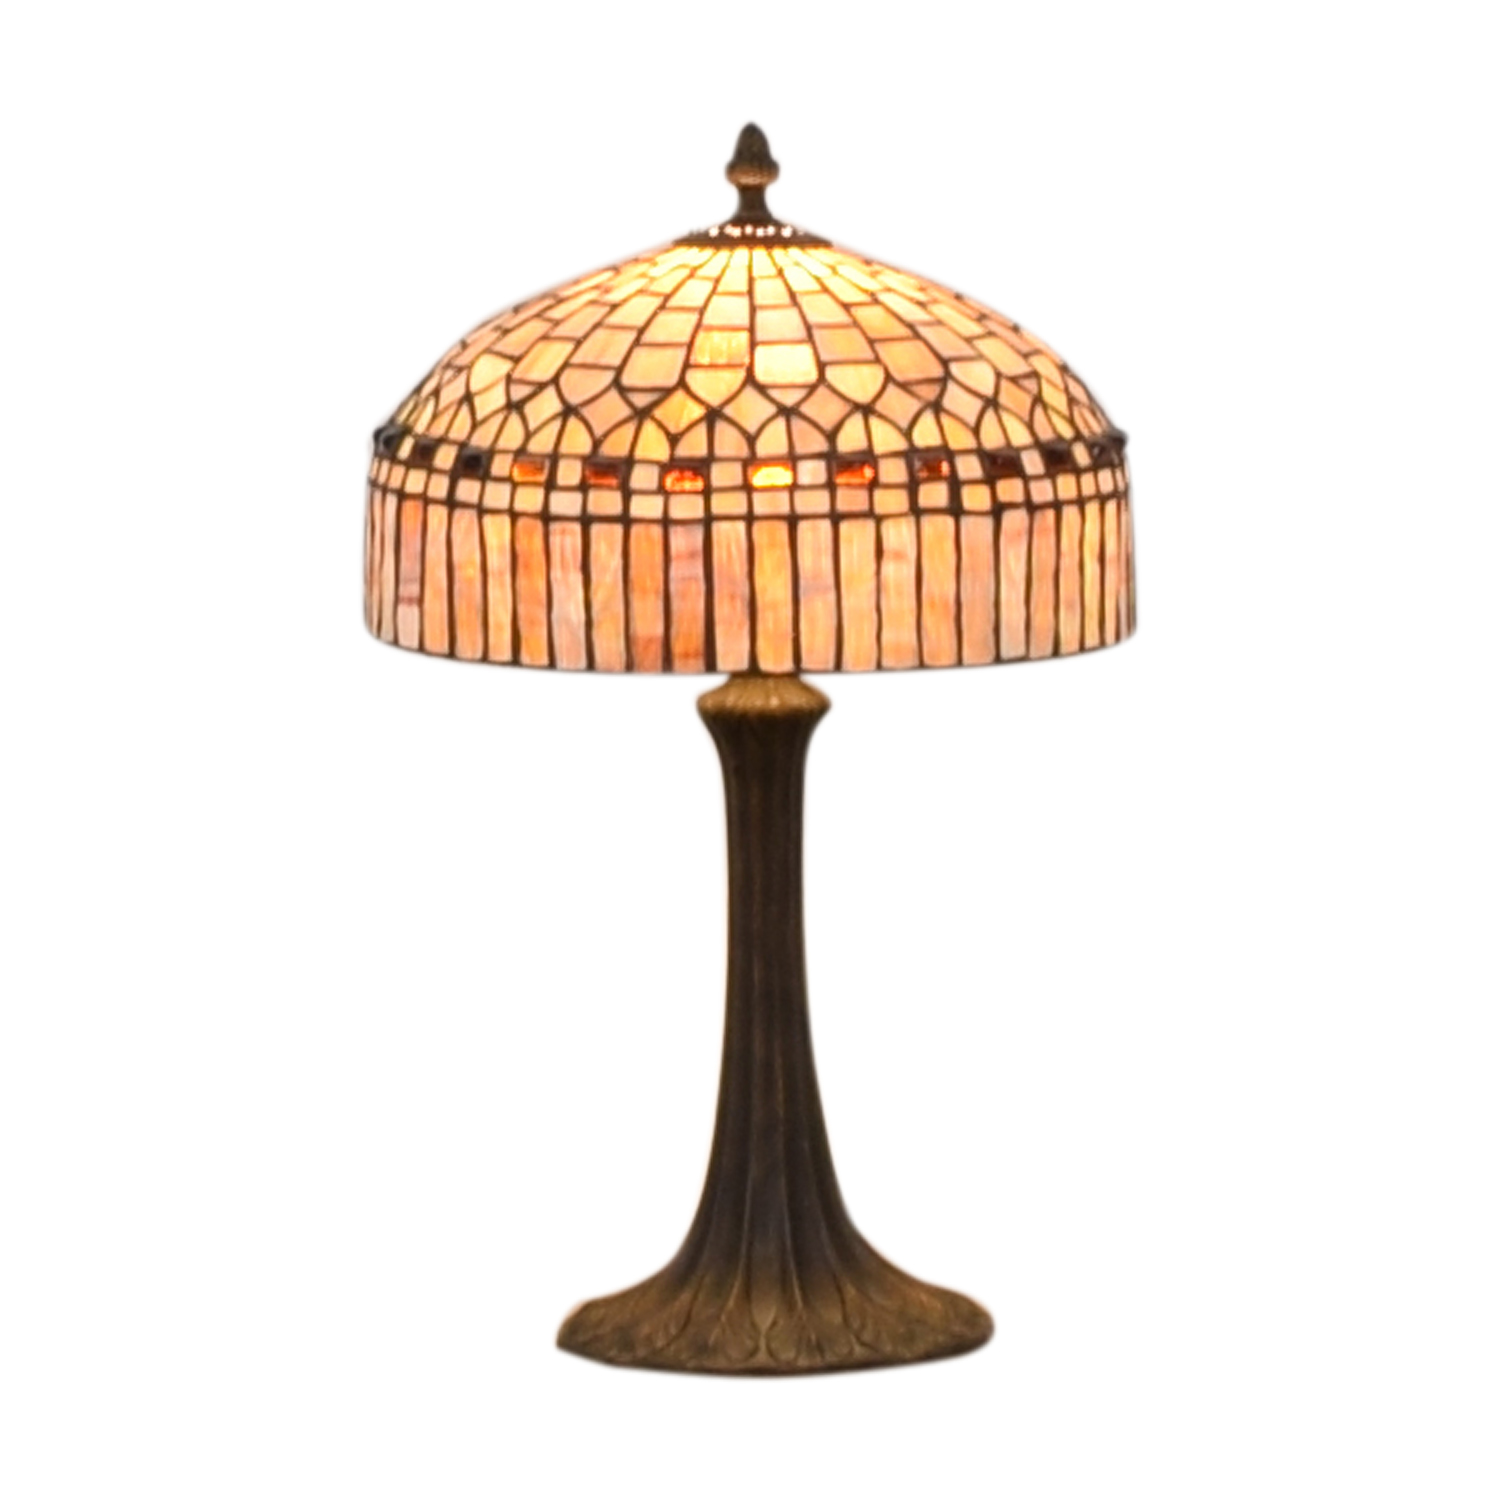 Tiffany-Style Desk Lamp on sale